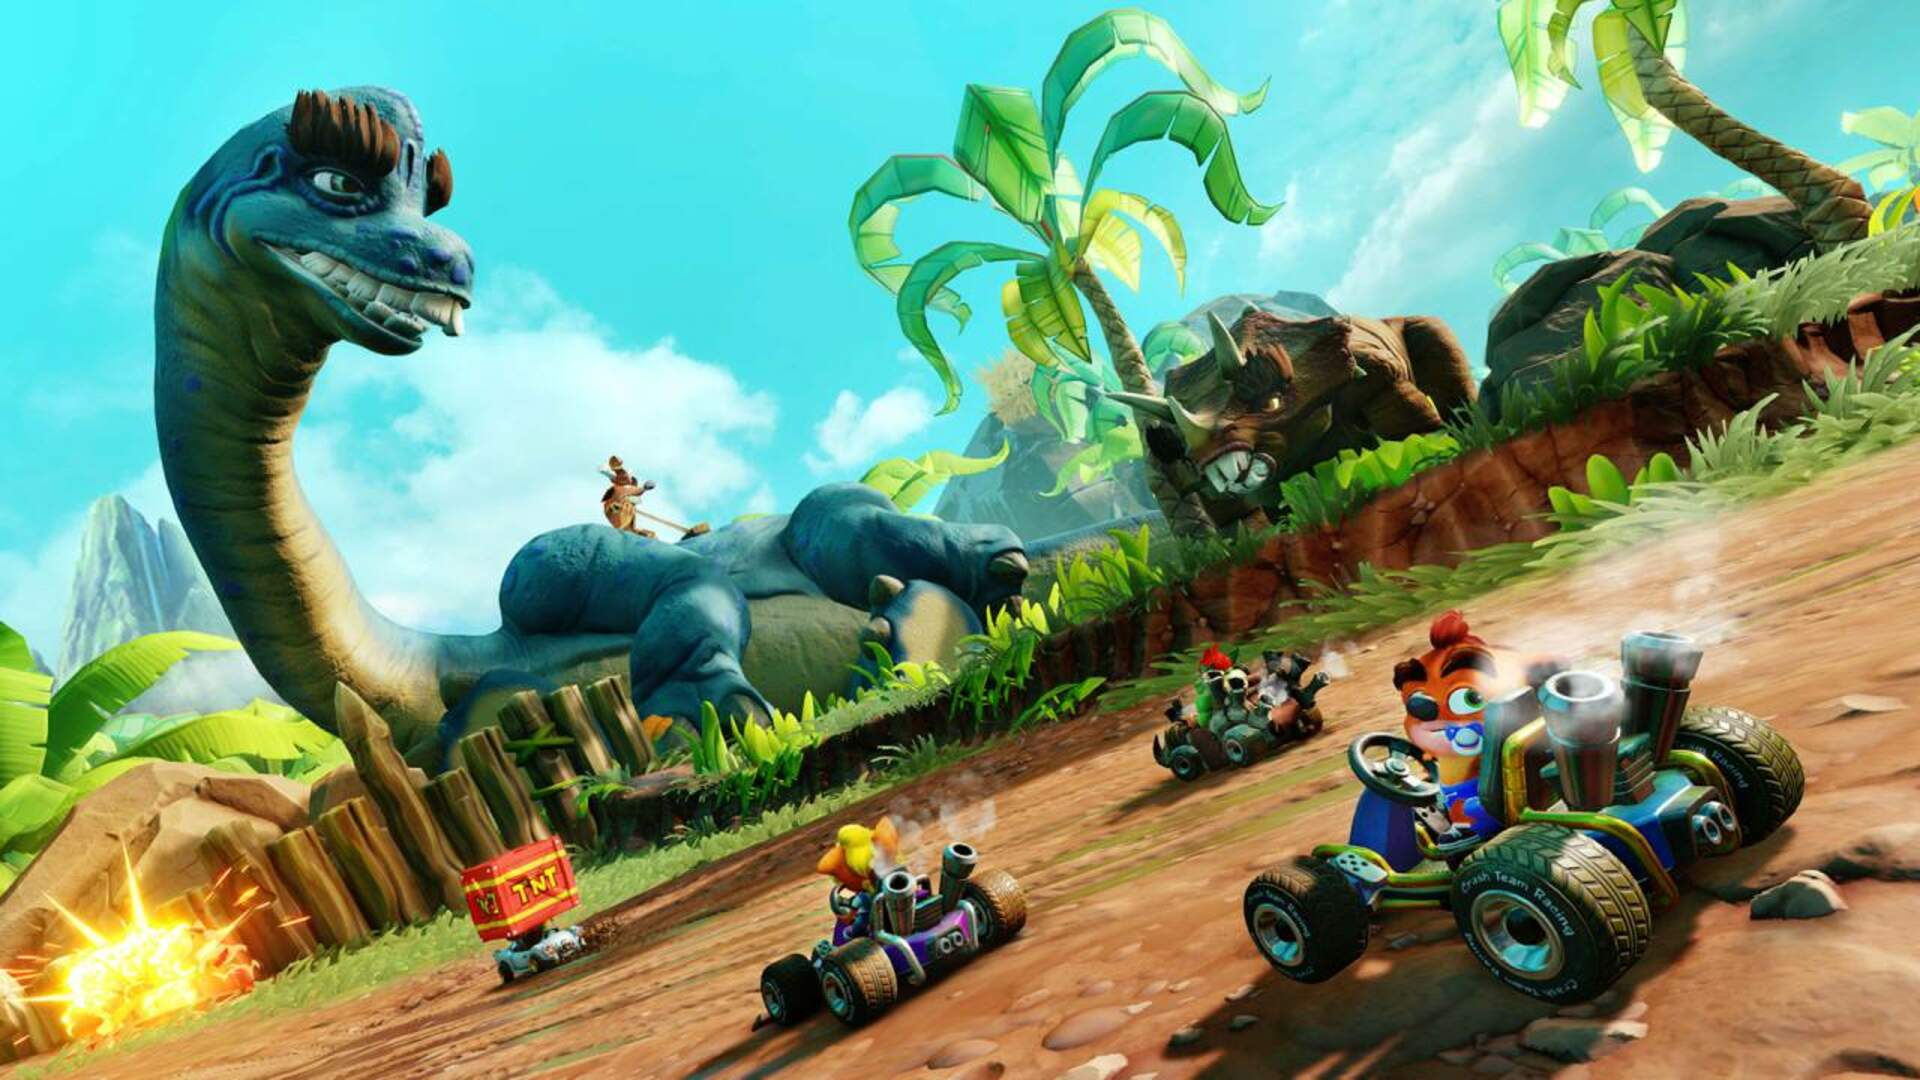 Crash Team Racing is Ending Its Grand Prix Events, But That Won't be the Last of Its New Content